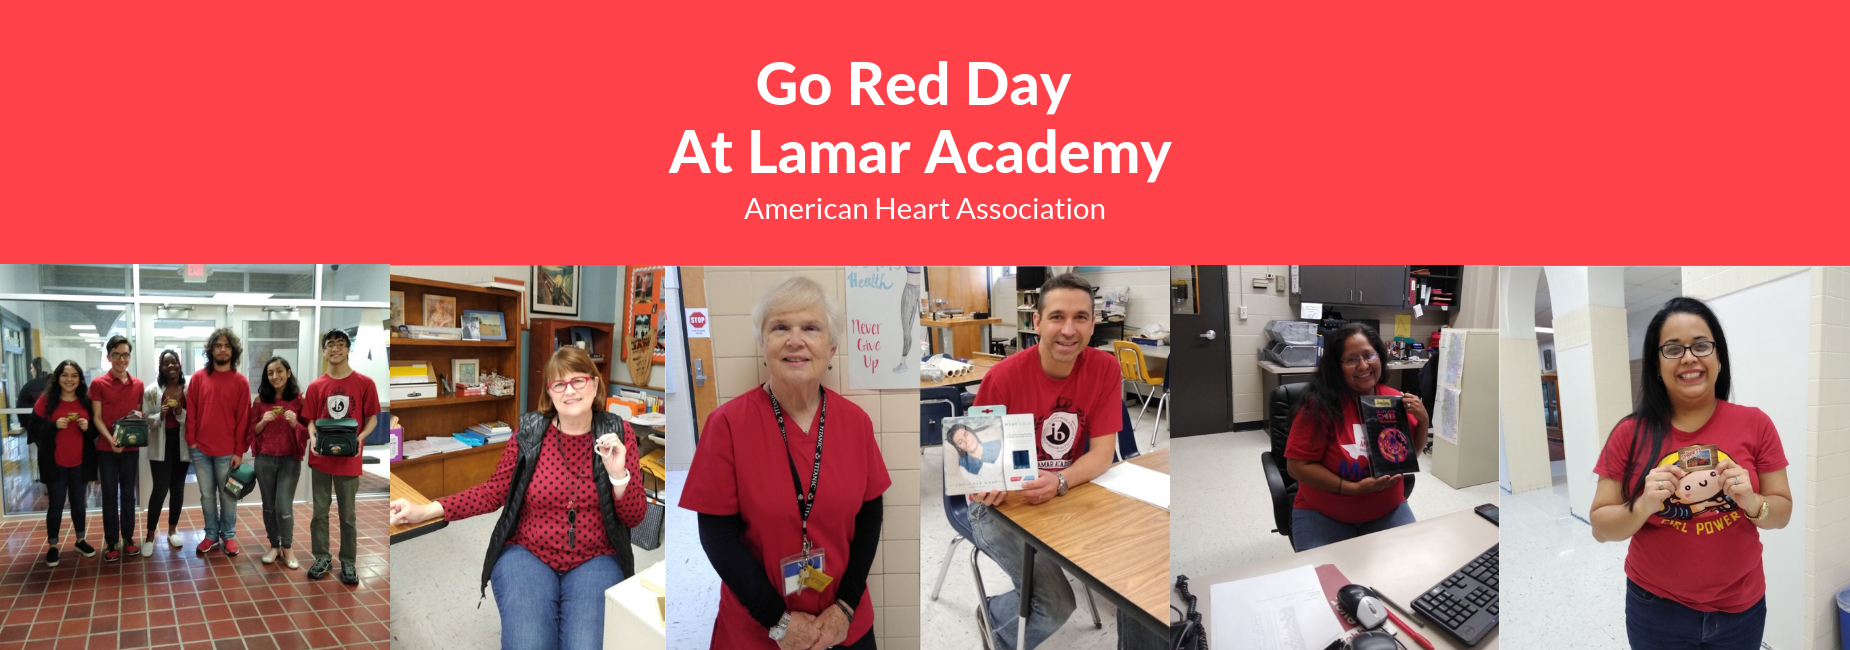 GO Red Day at Lamar Academy